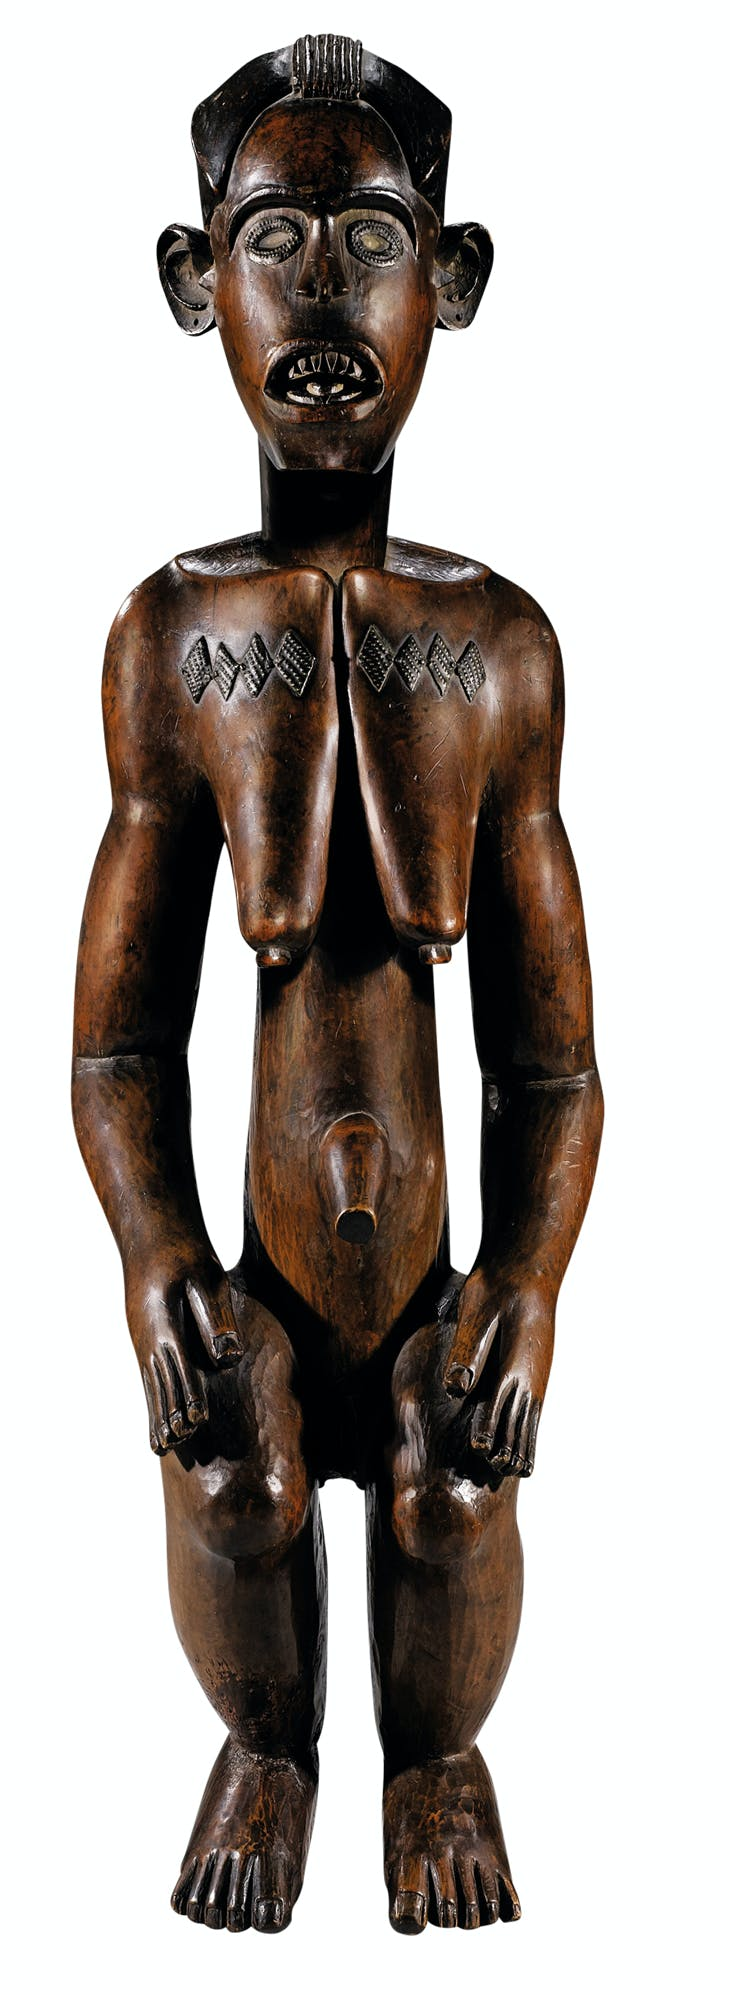 Statue of a woman (19th century), Fang Mabea, Cameroon.